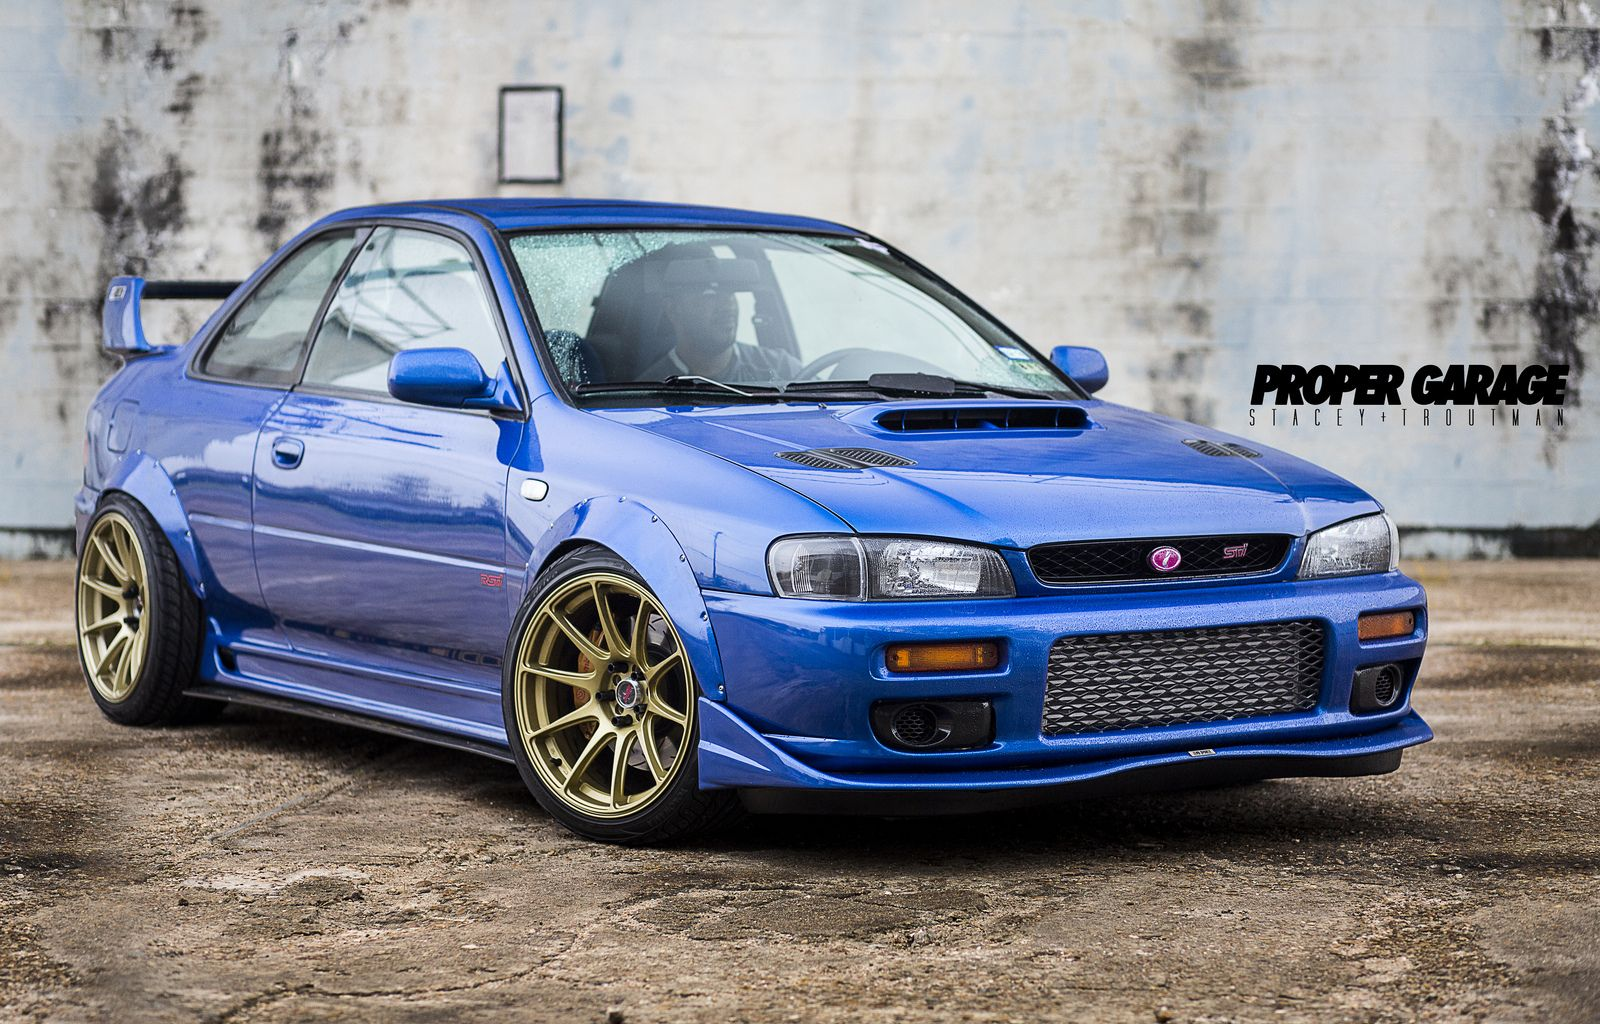 Won T Be Seeing This In Your Rearview Might Catch The Taillights Though When It Blows By Subaru Subaru Impreza Subaru Impreza Sti